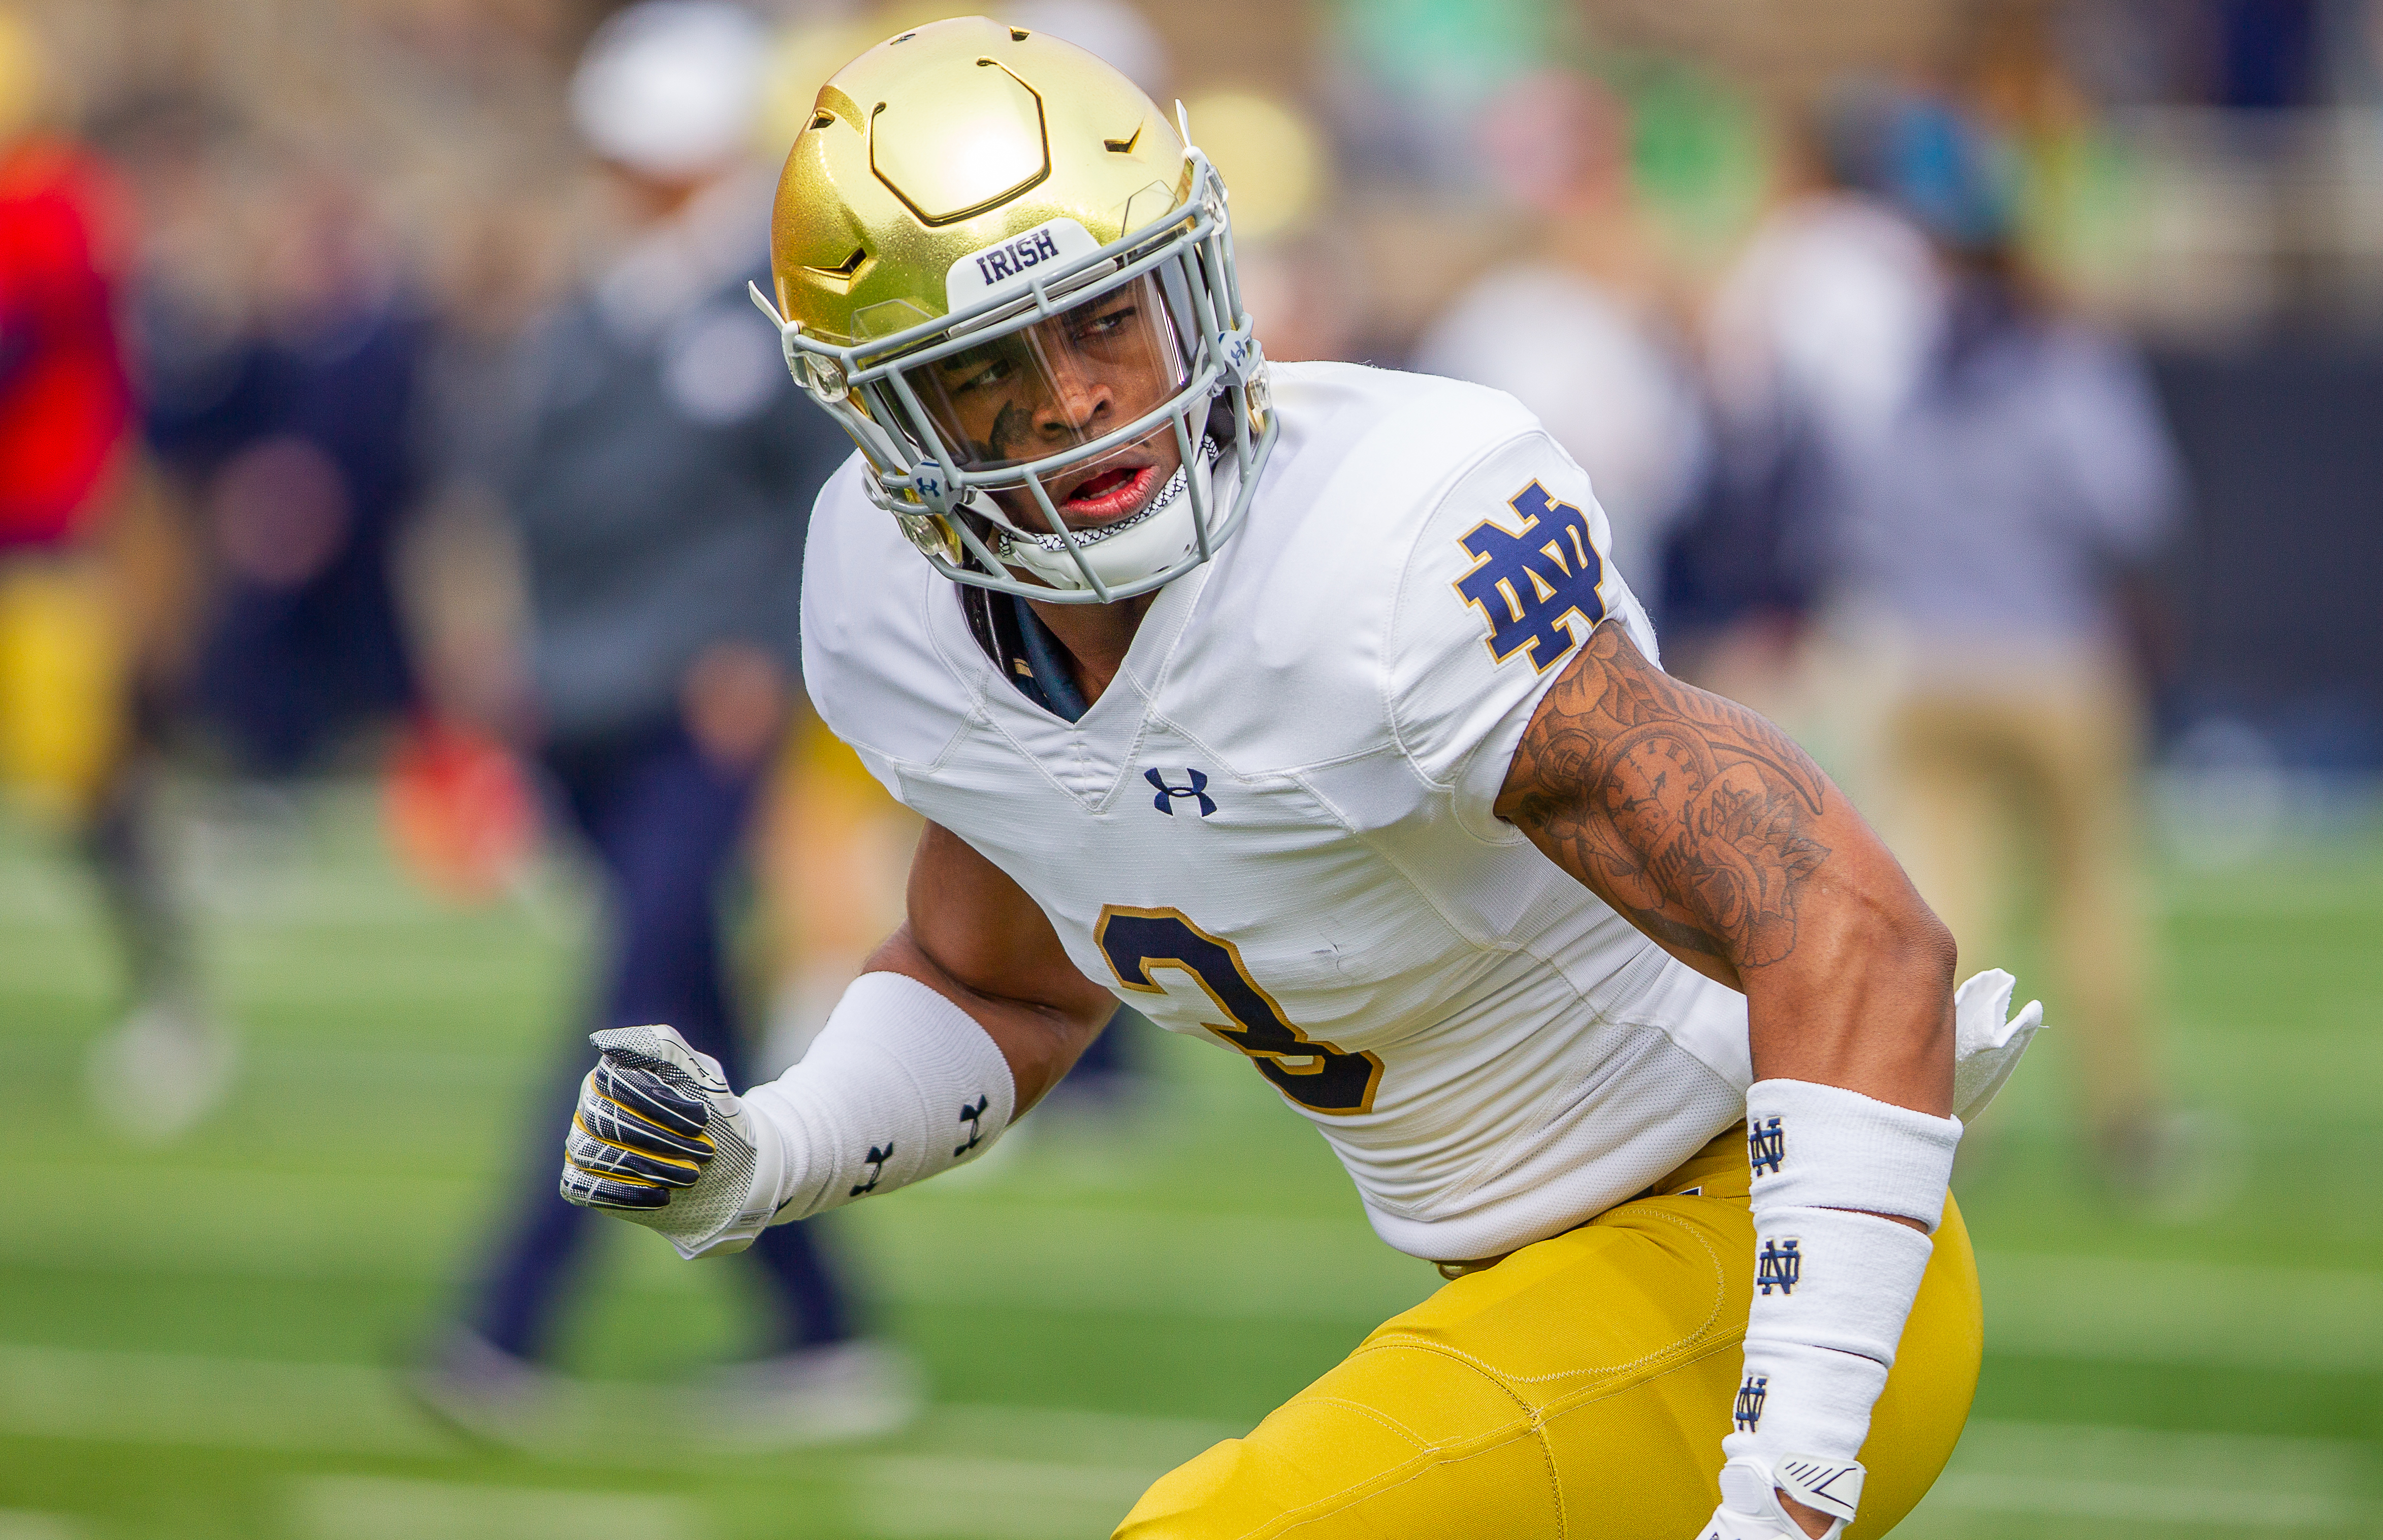 Houston Griffith notre dame football